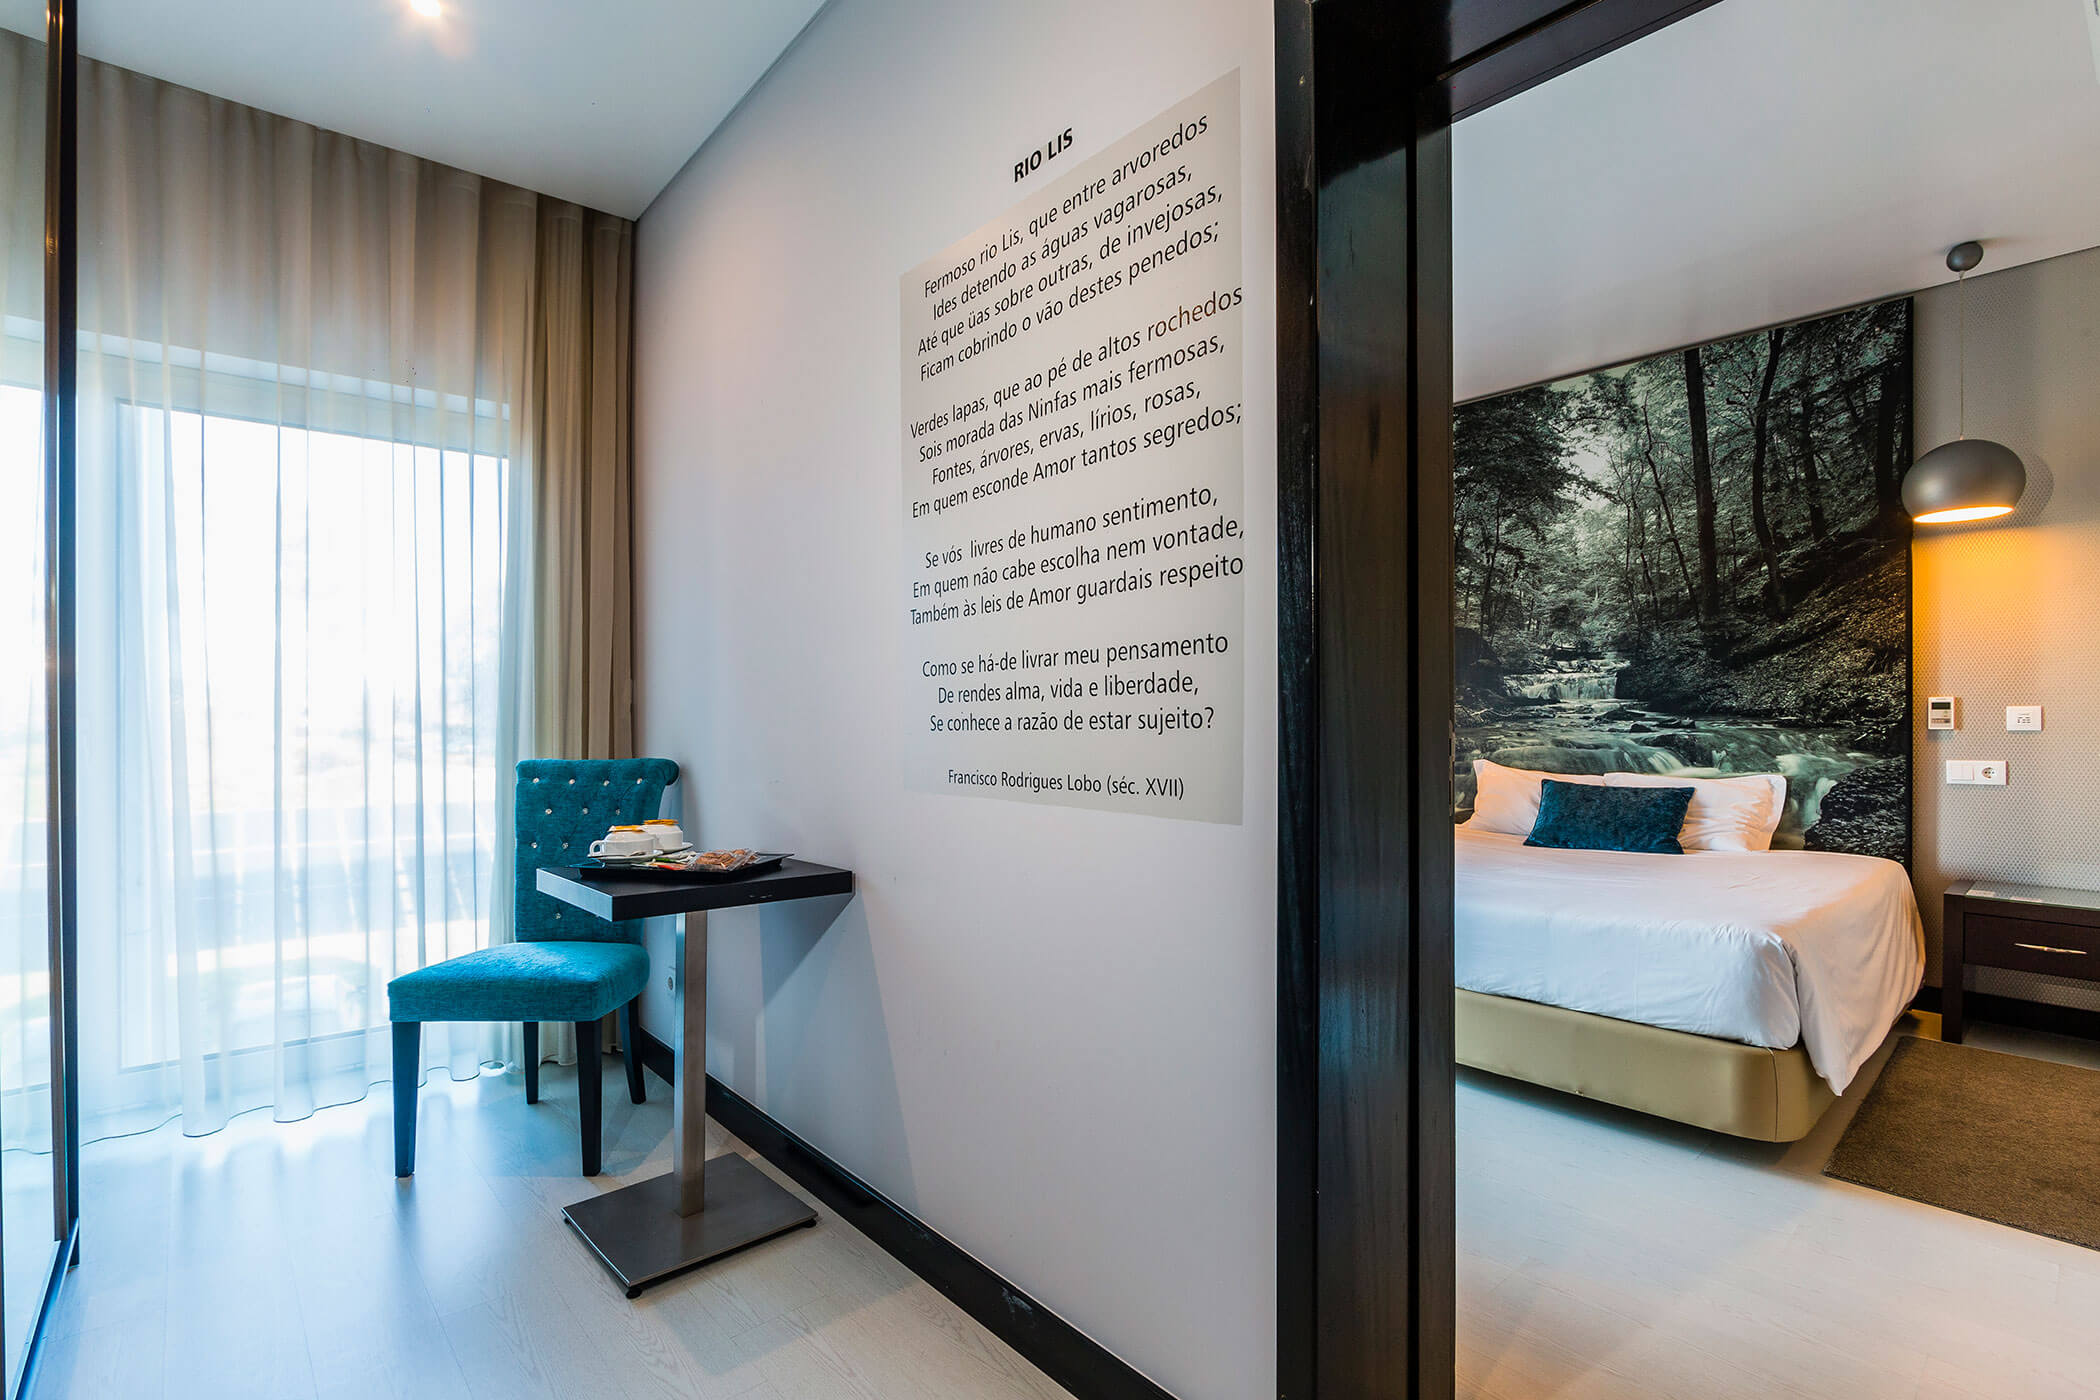 Superior Double Room Rio Lis, with poem by Francisco Rodrigues Lobo - Lisotel Hotel & Spa, Leiria